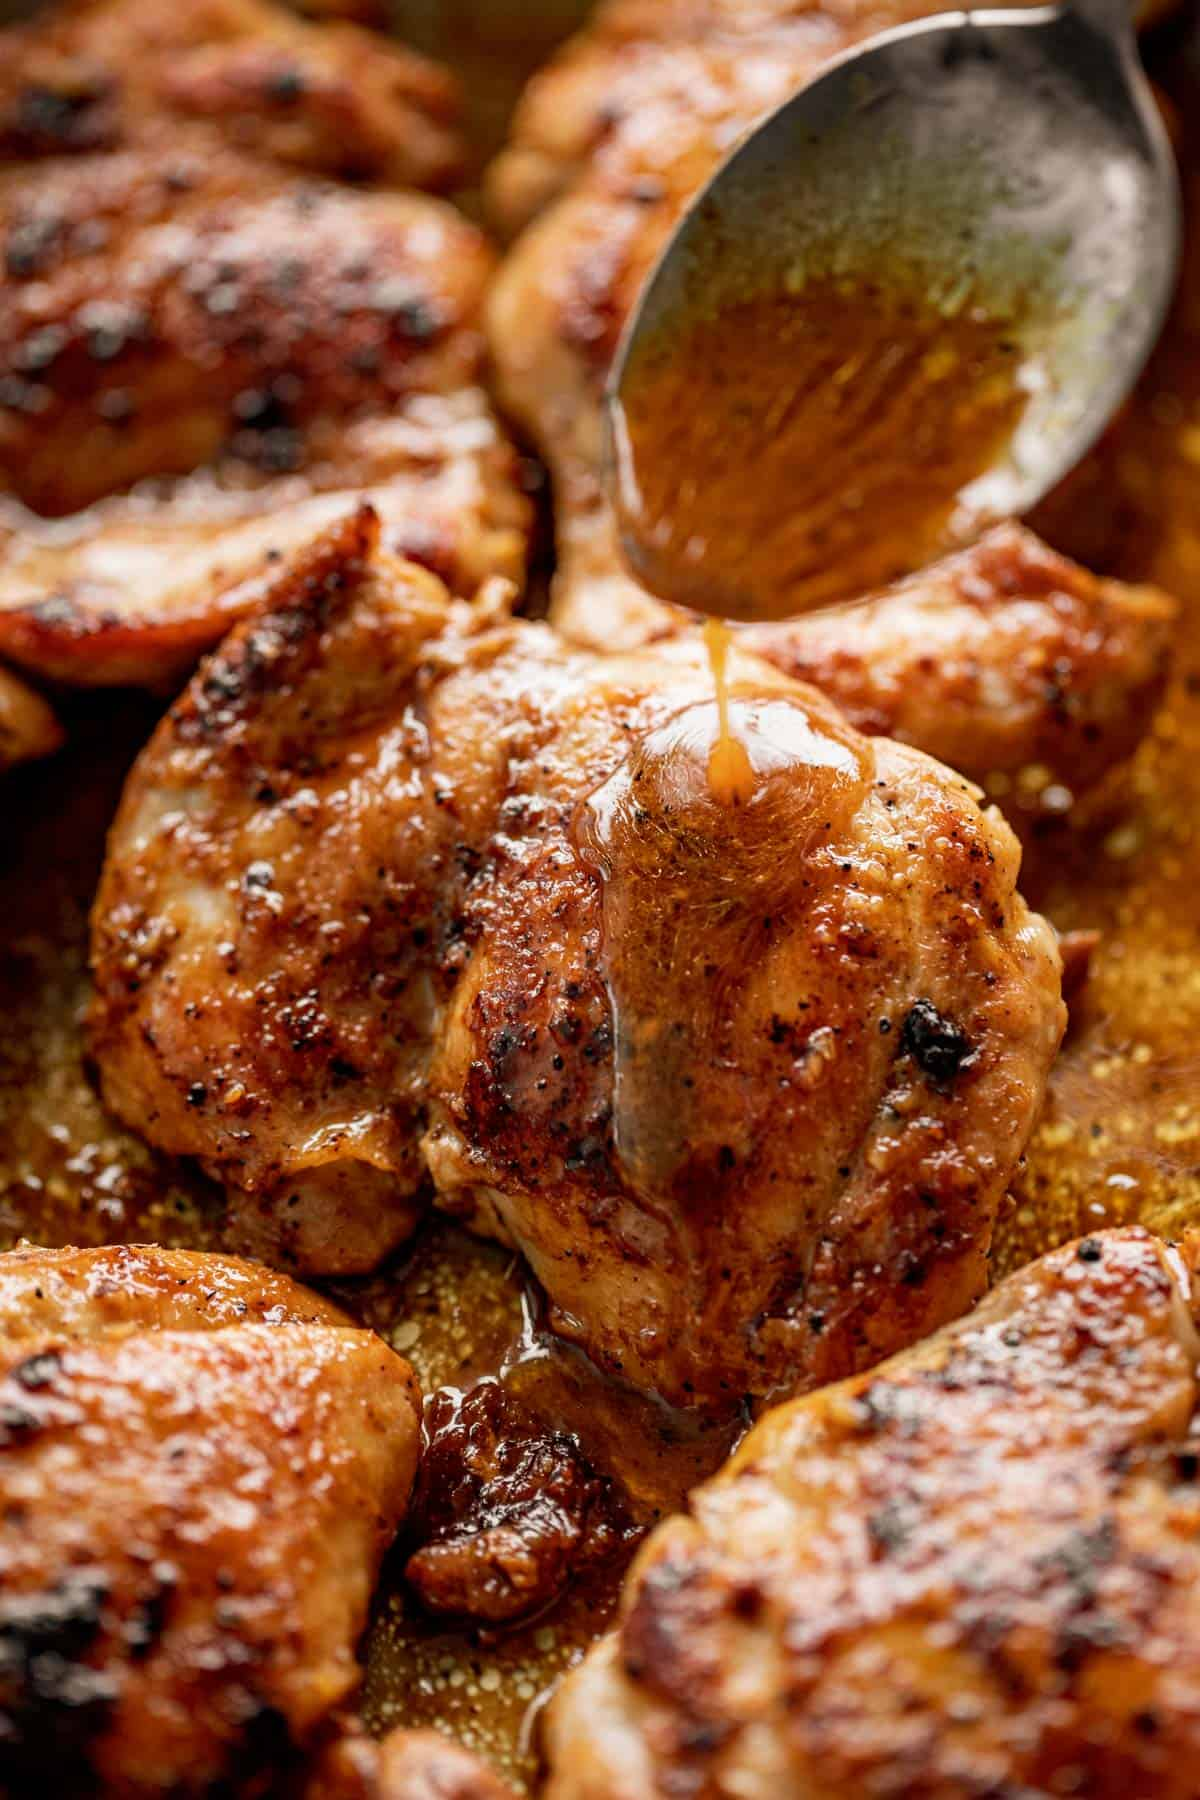 Boneless chicken thighs drizzled with sauce